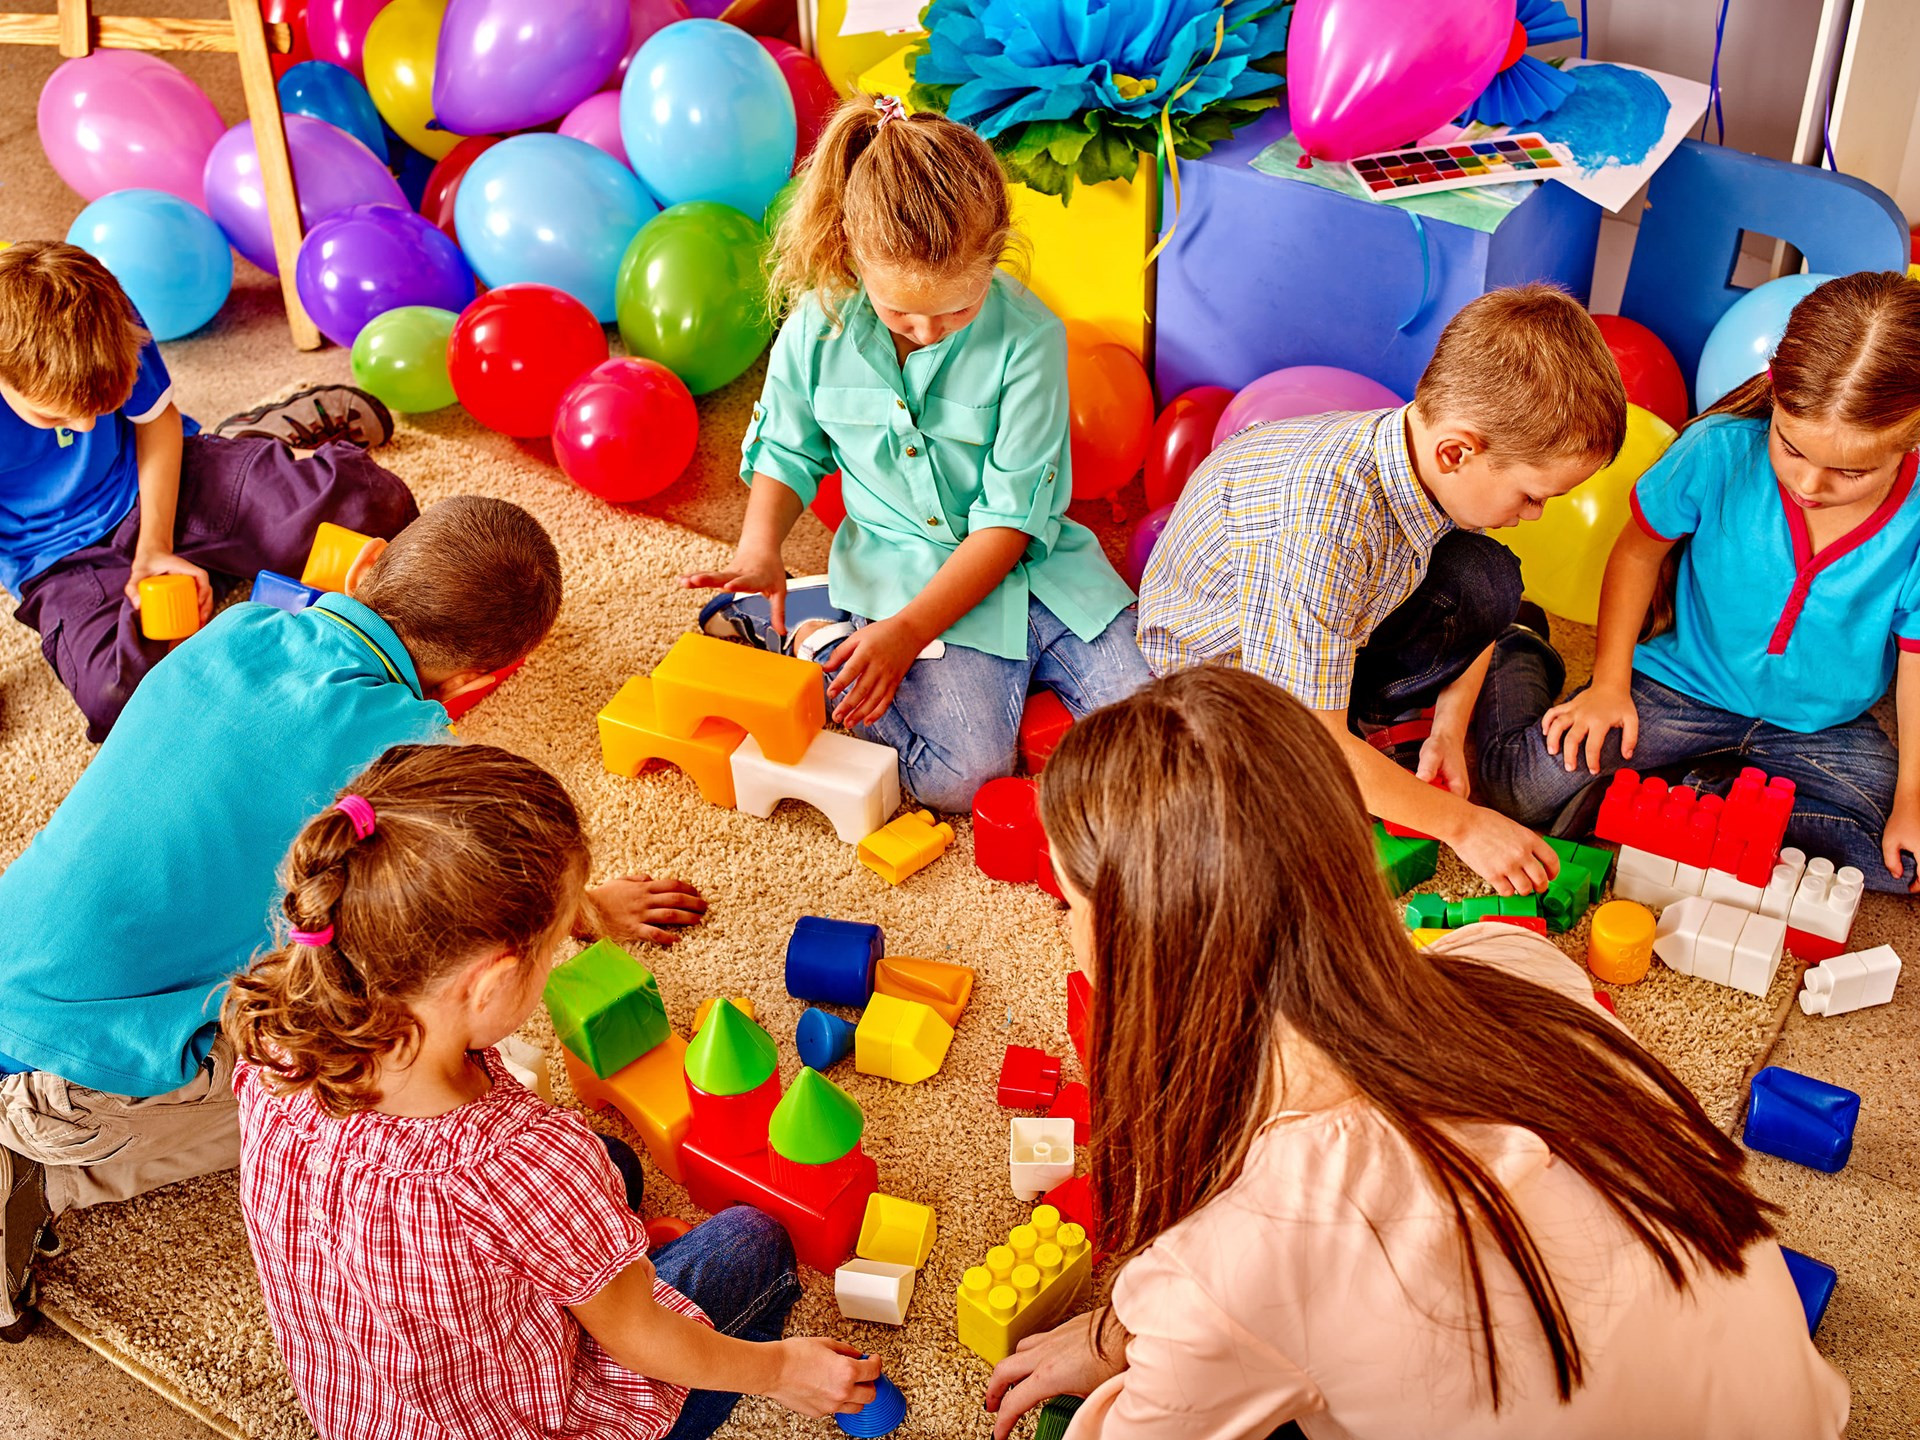 Childcare Is Ridiculously Over-Regulated - Foundation for